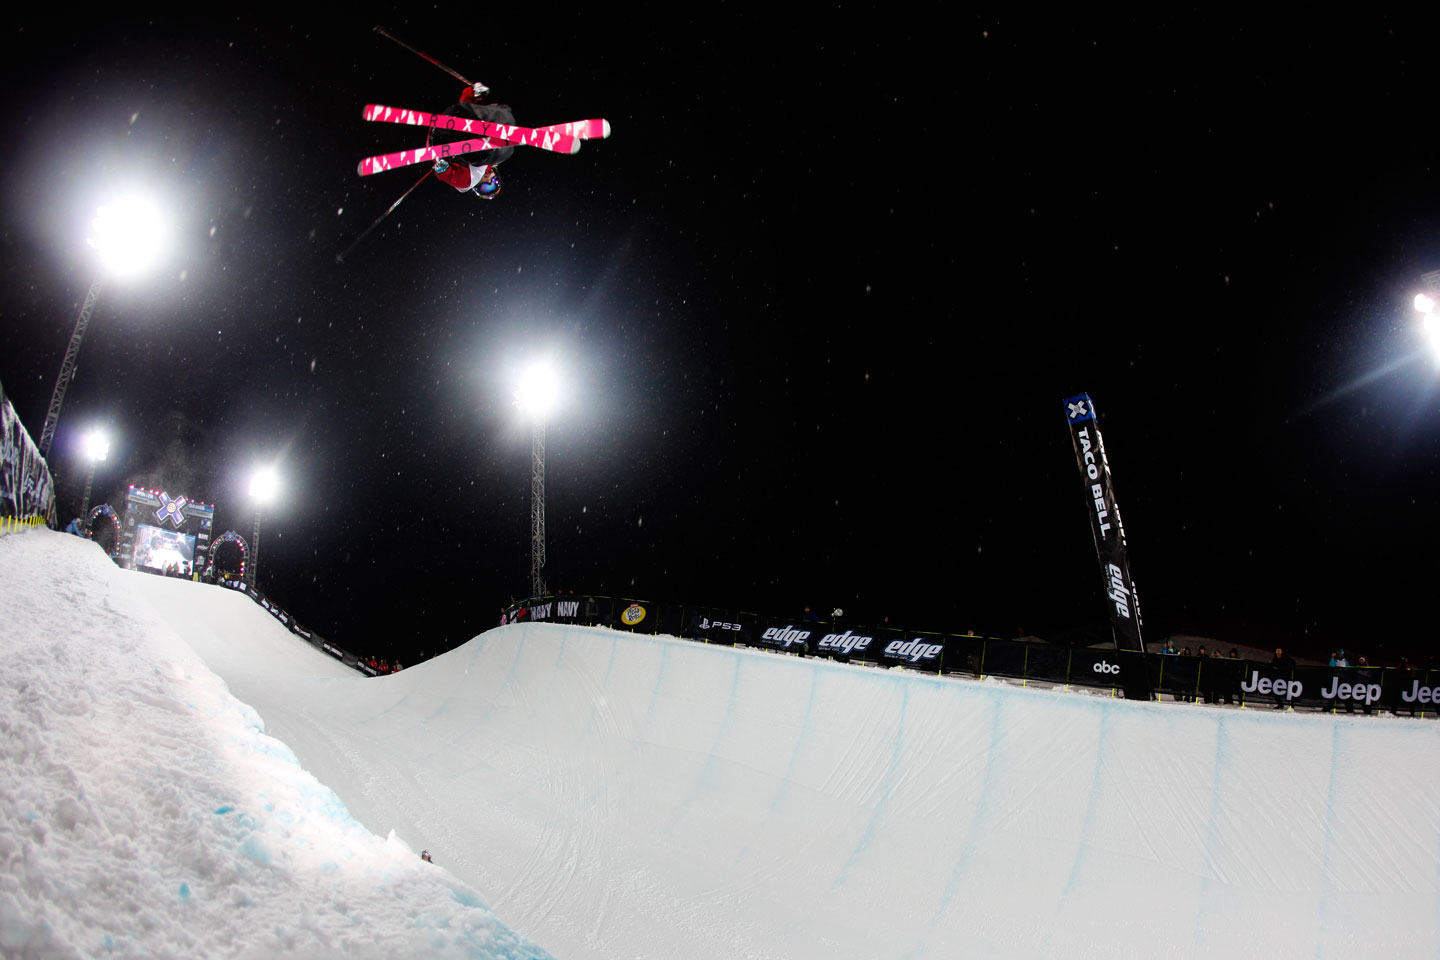 Air Bowman sending a pair of Roxy skis into orbit